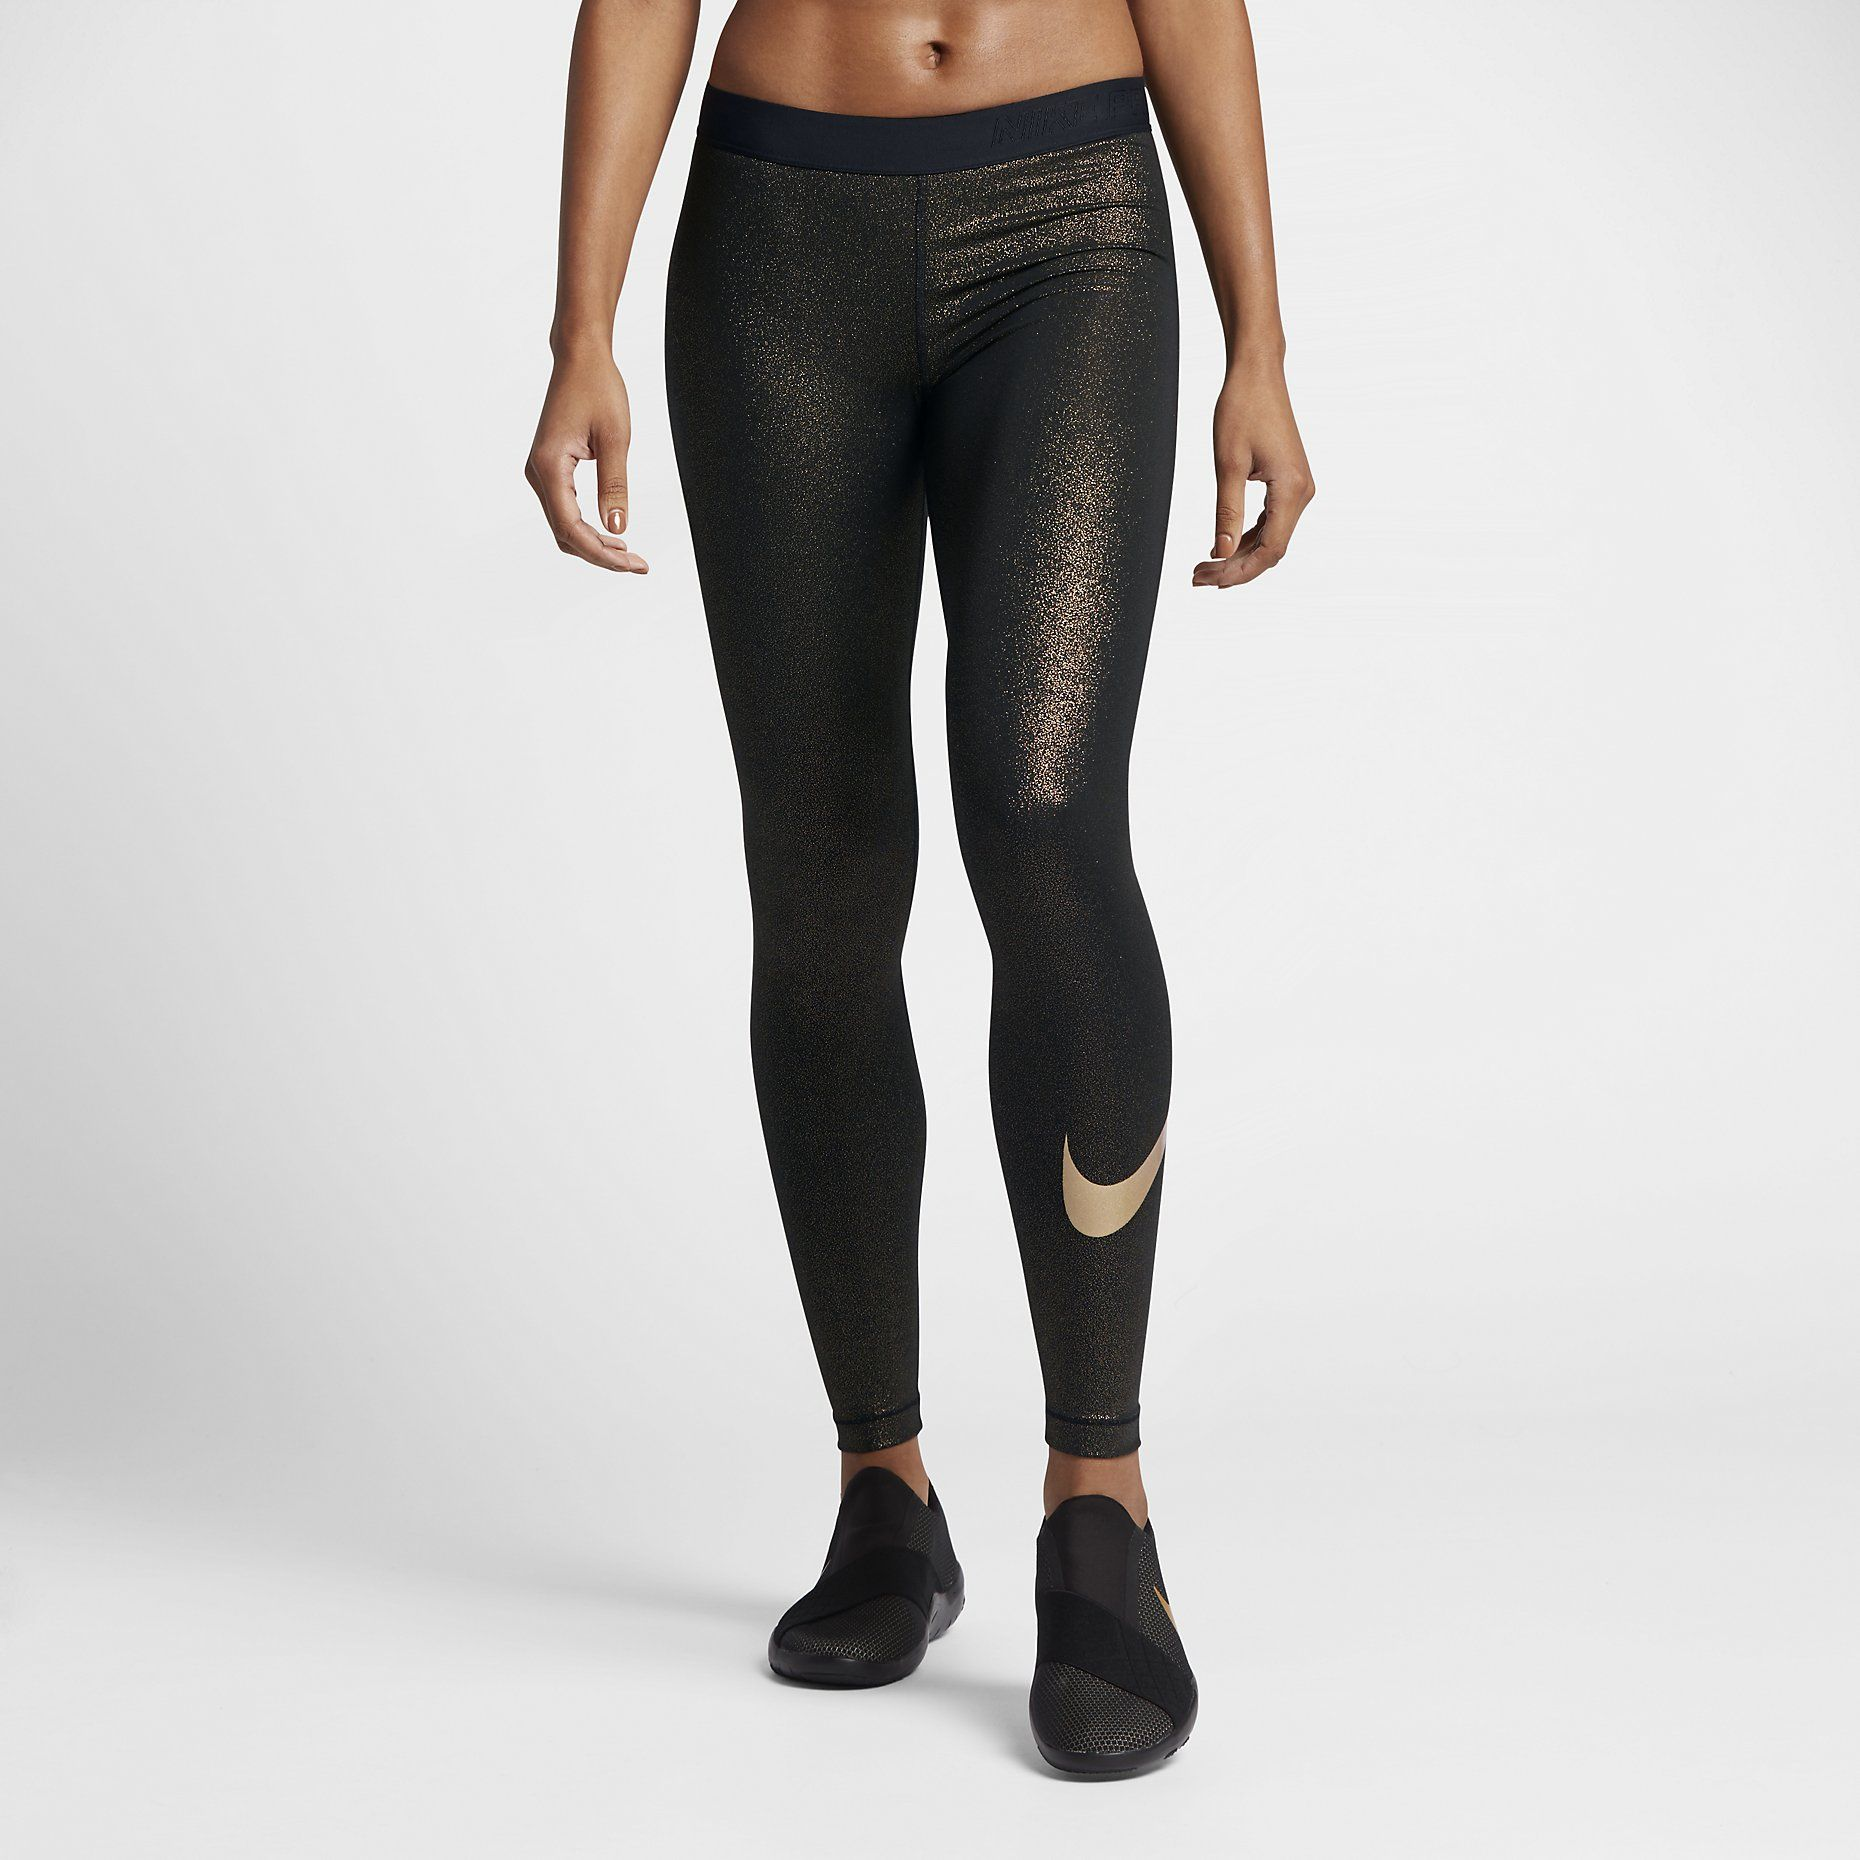 9833bd897209ba Products engineered for peak performance in competition, training, and  life. Shop the latest innovation at Nike.com.